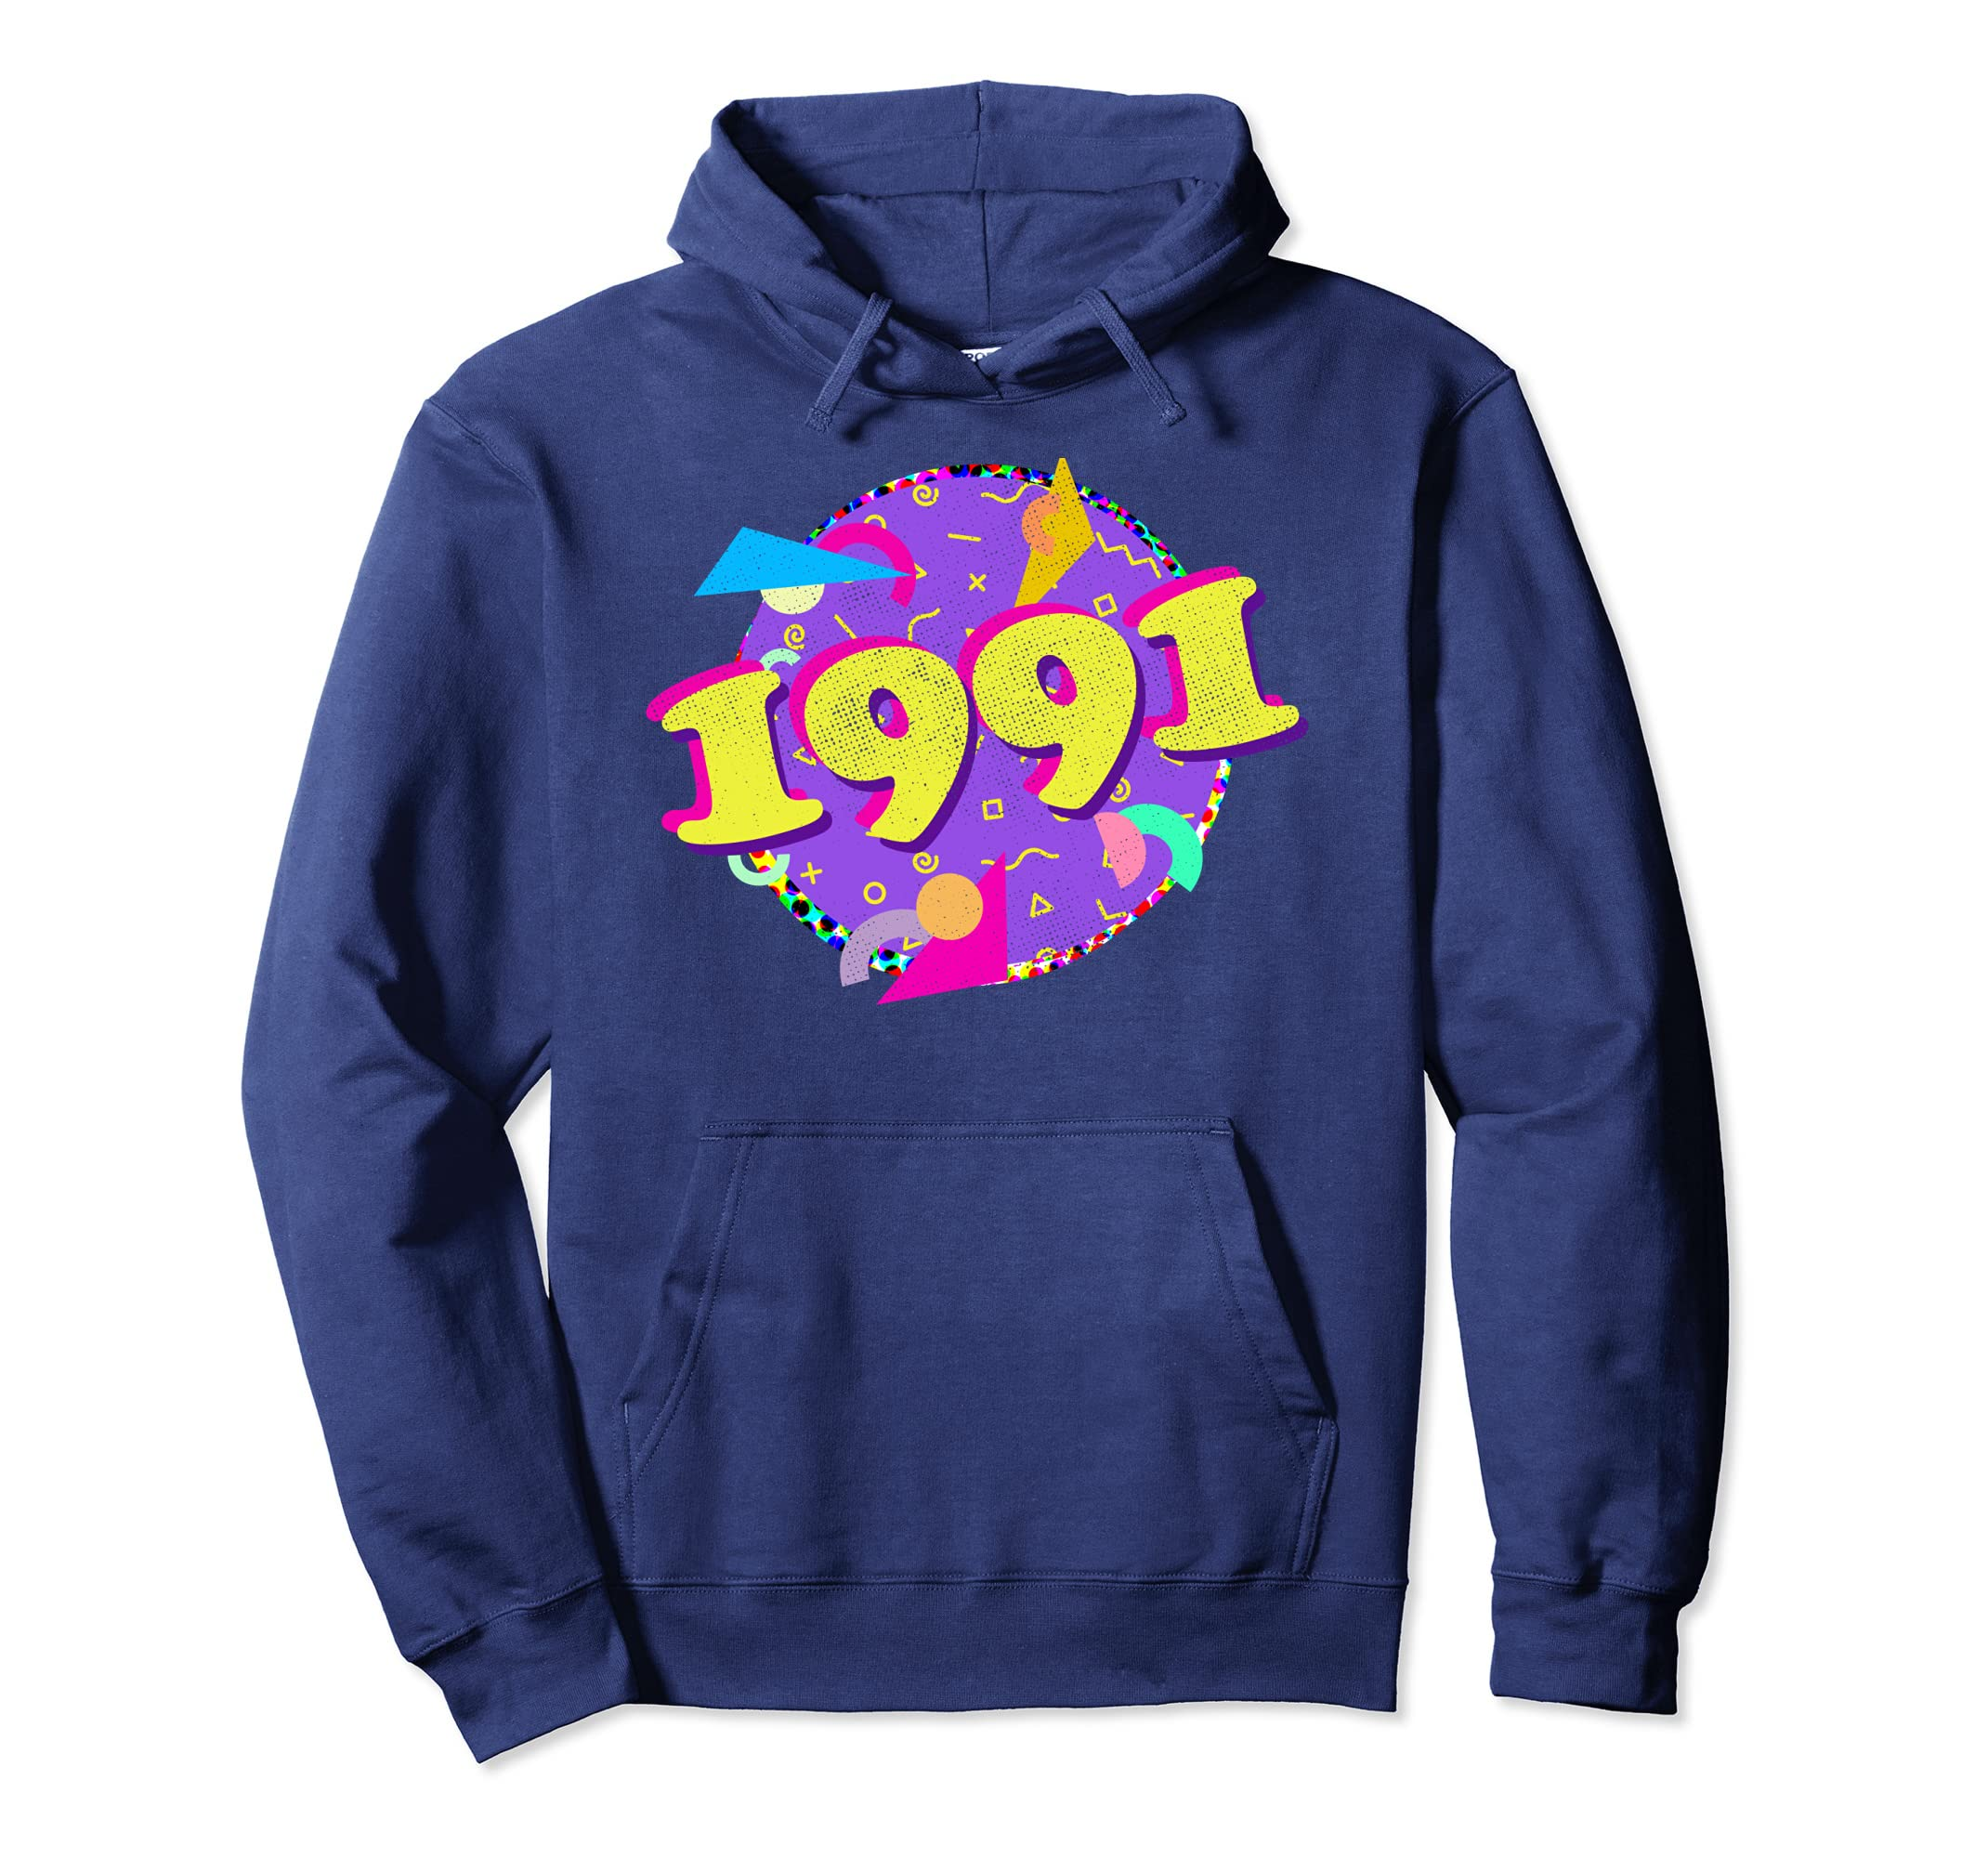 1991 Hoodie 27th Birthday Shirt Retro 90s Style